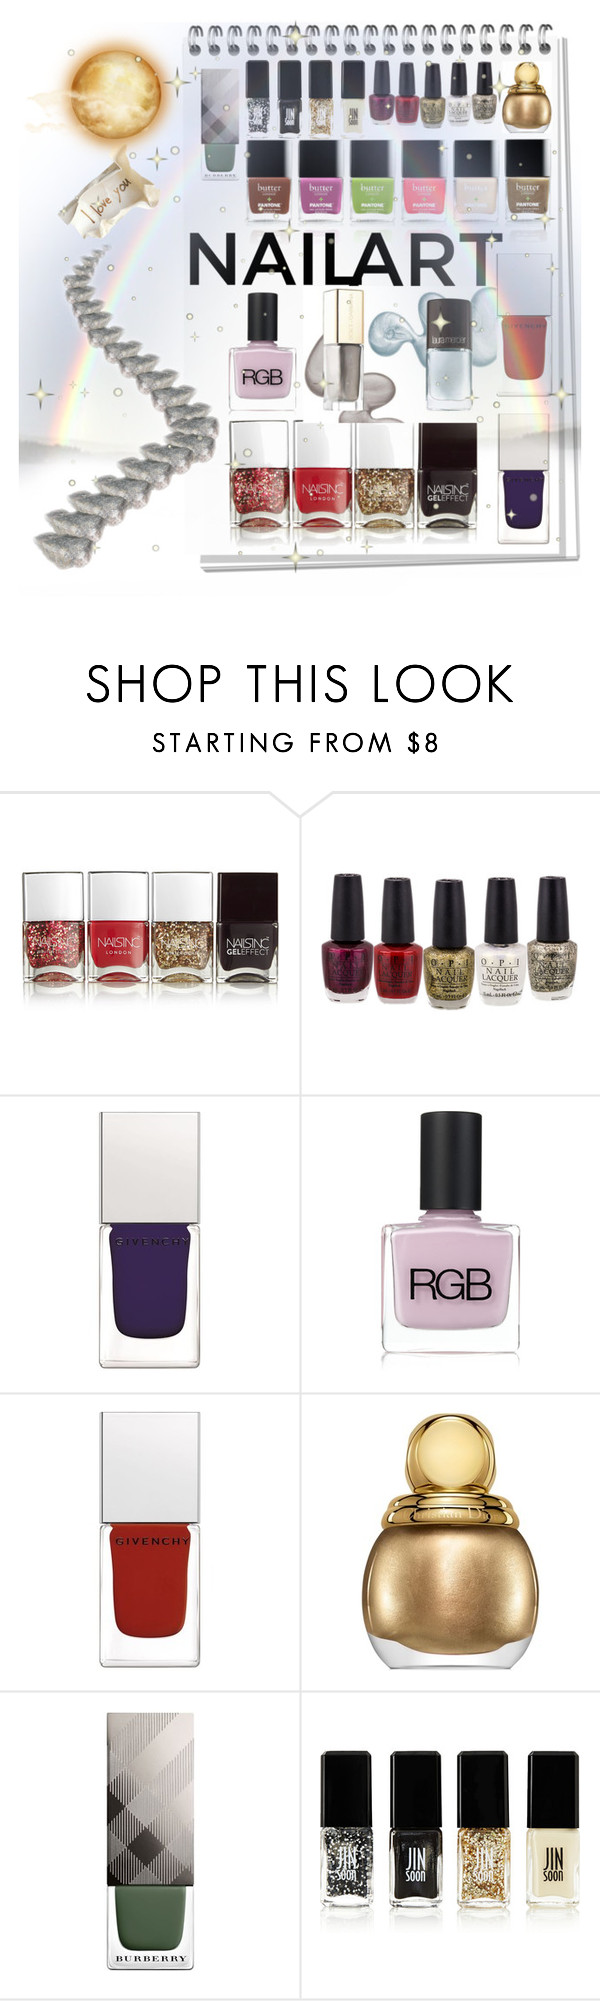 """""""Nail Art👛💅💄"""" by seanahr ❤ liked on Polyvore featuring Nails Inc., Givenchy, RGB Cosmetics, Christian Dior, Burberry and Jin Soon"""